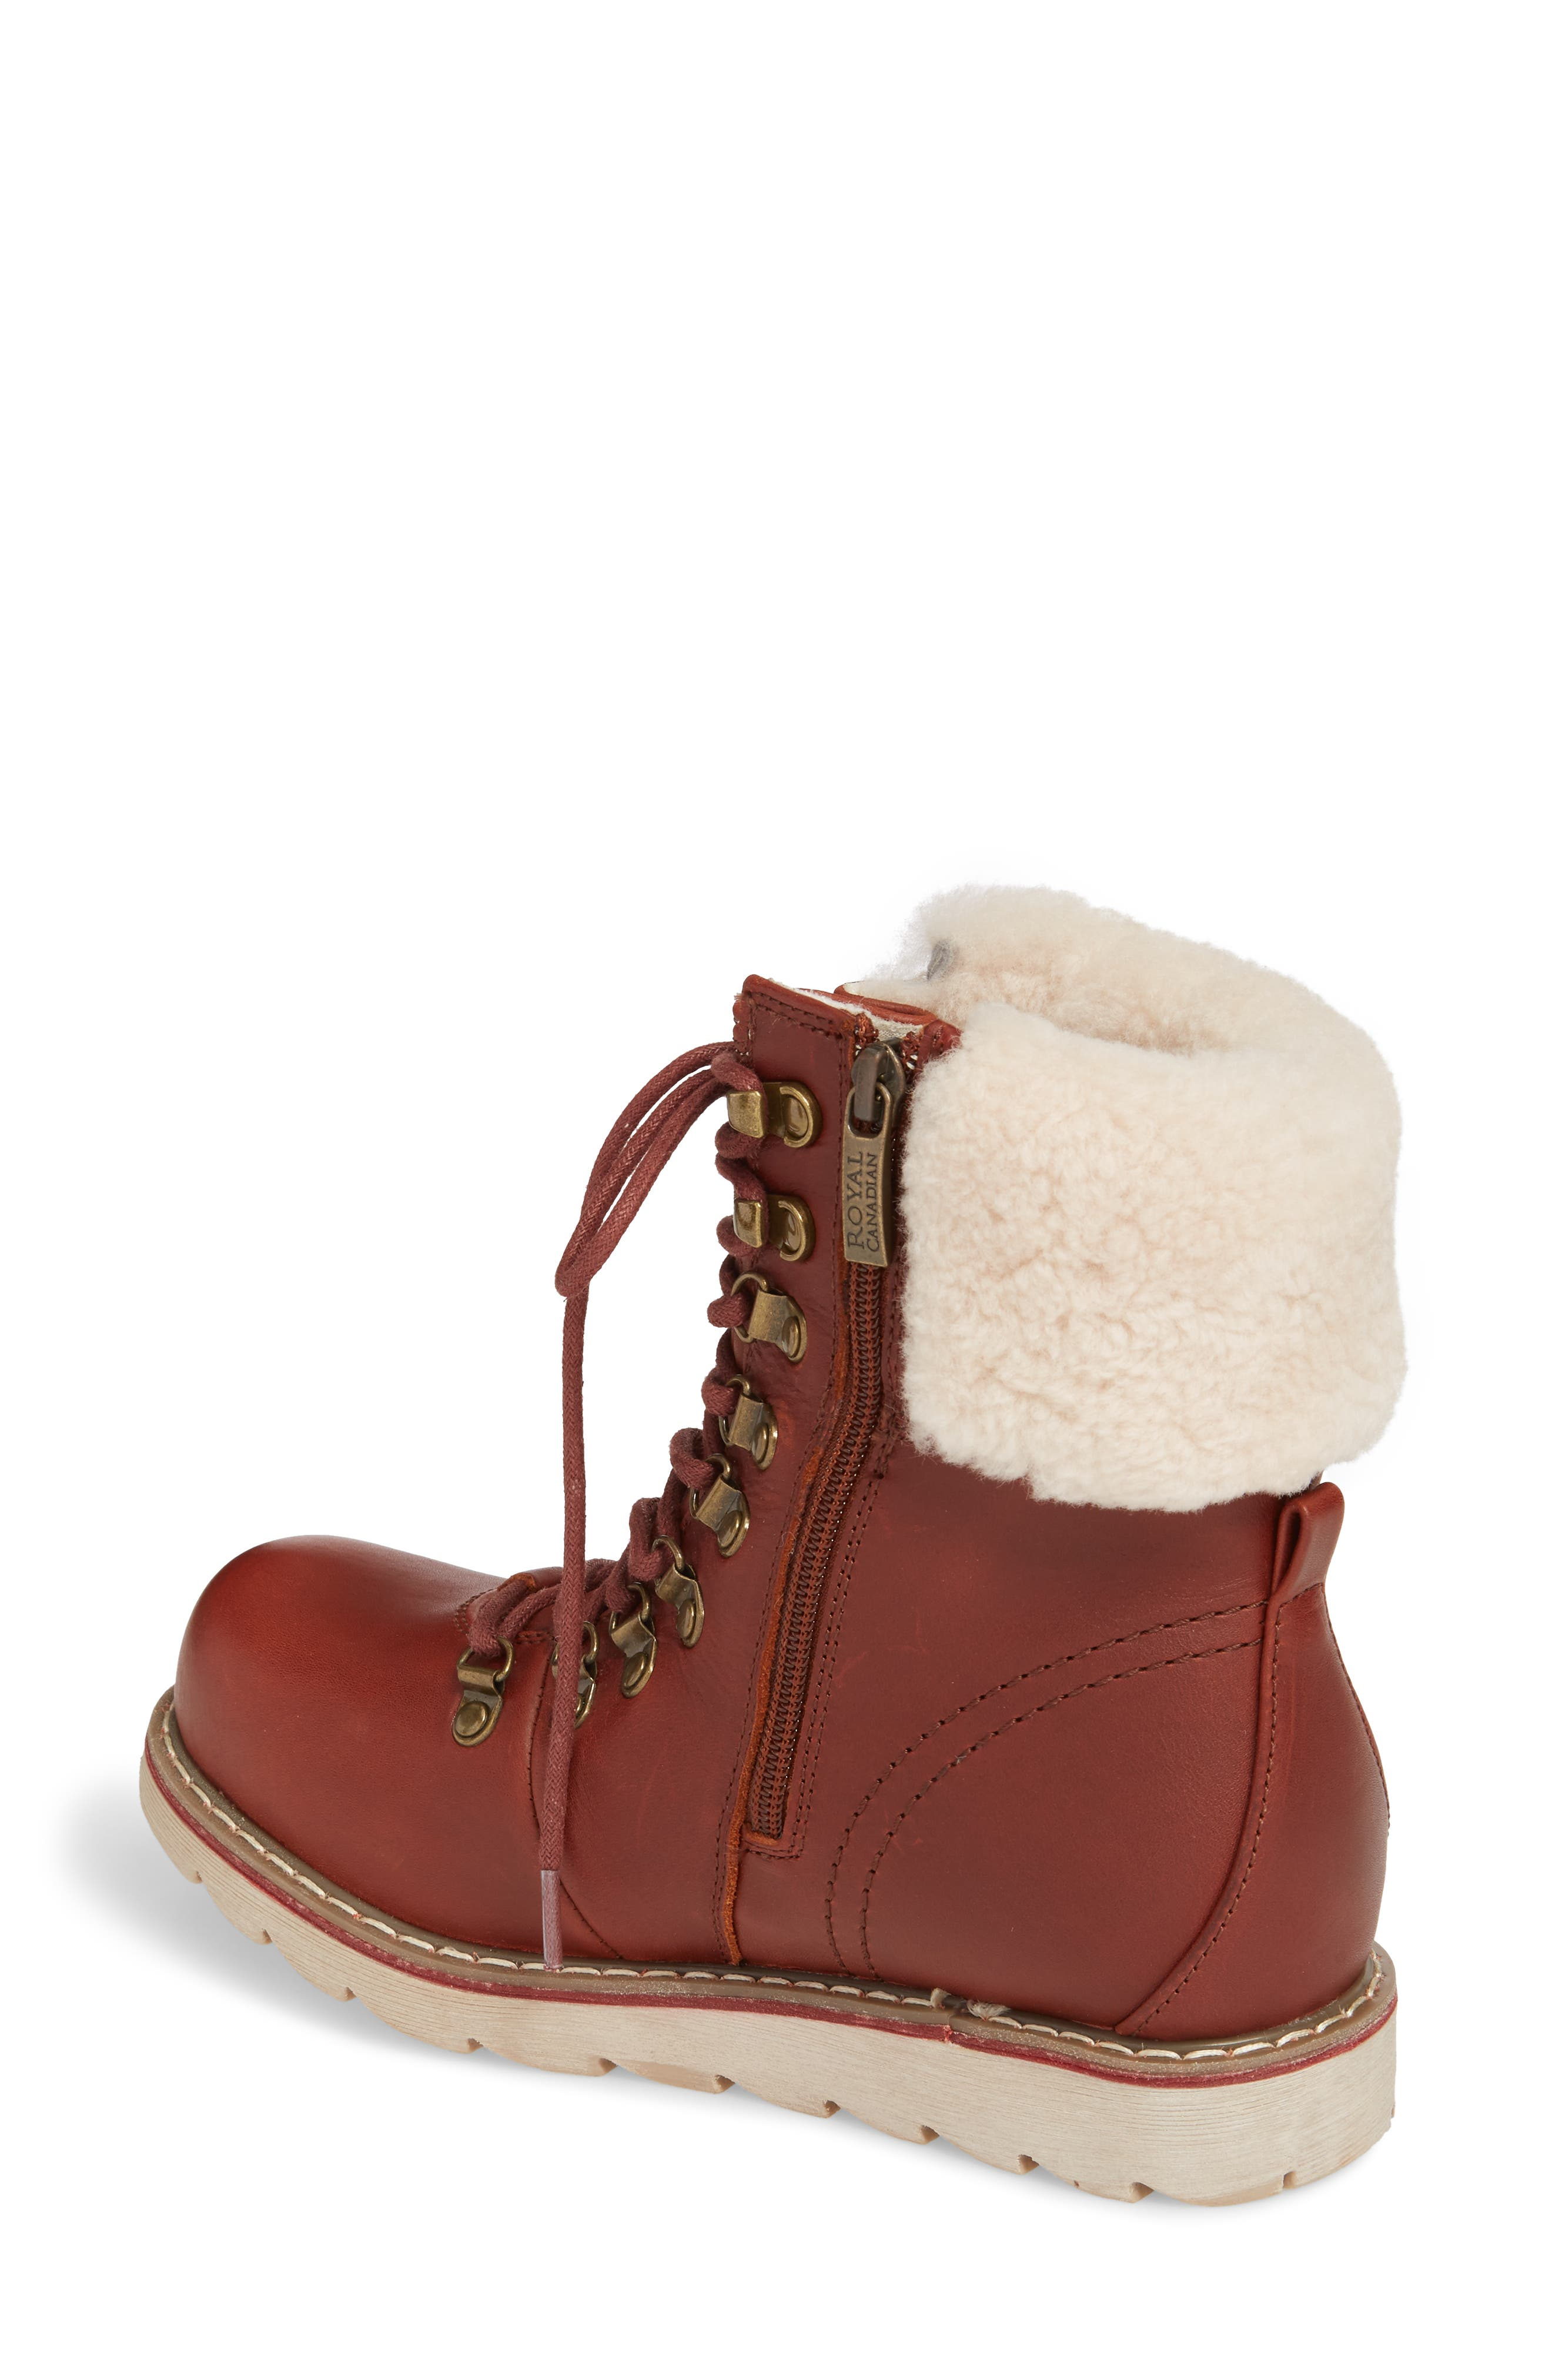 Lethbridge Waterproof Snow Boot with Genuine Shearling Cuff,                             Alternate thumbnail 7, color,